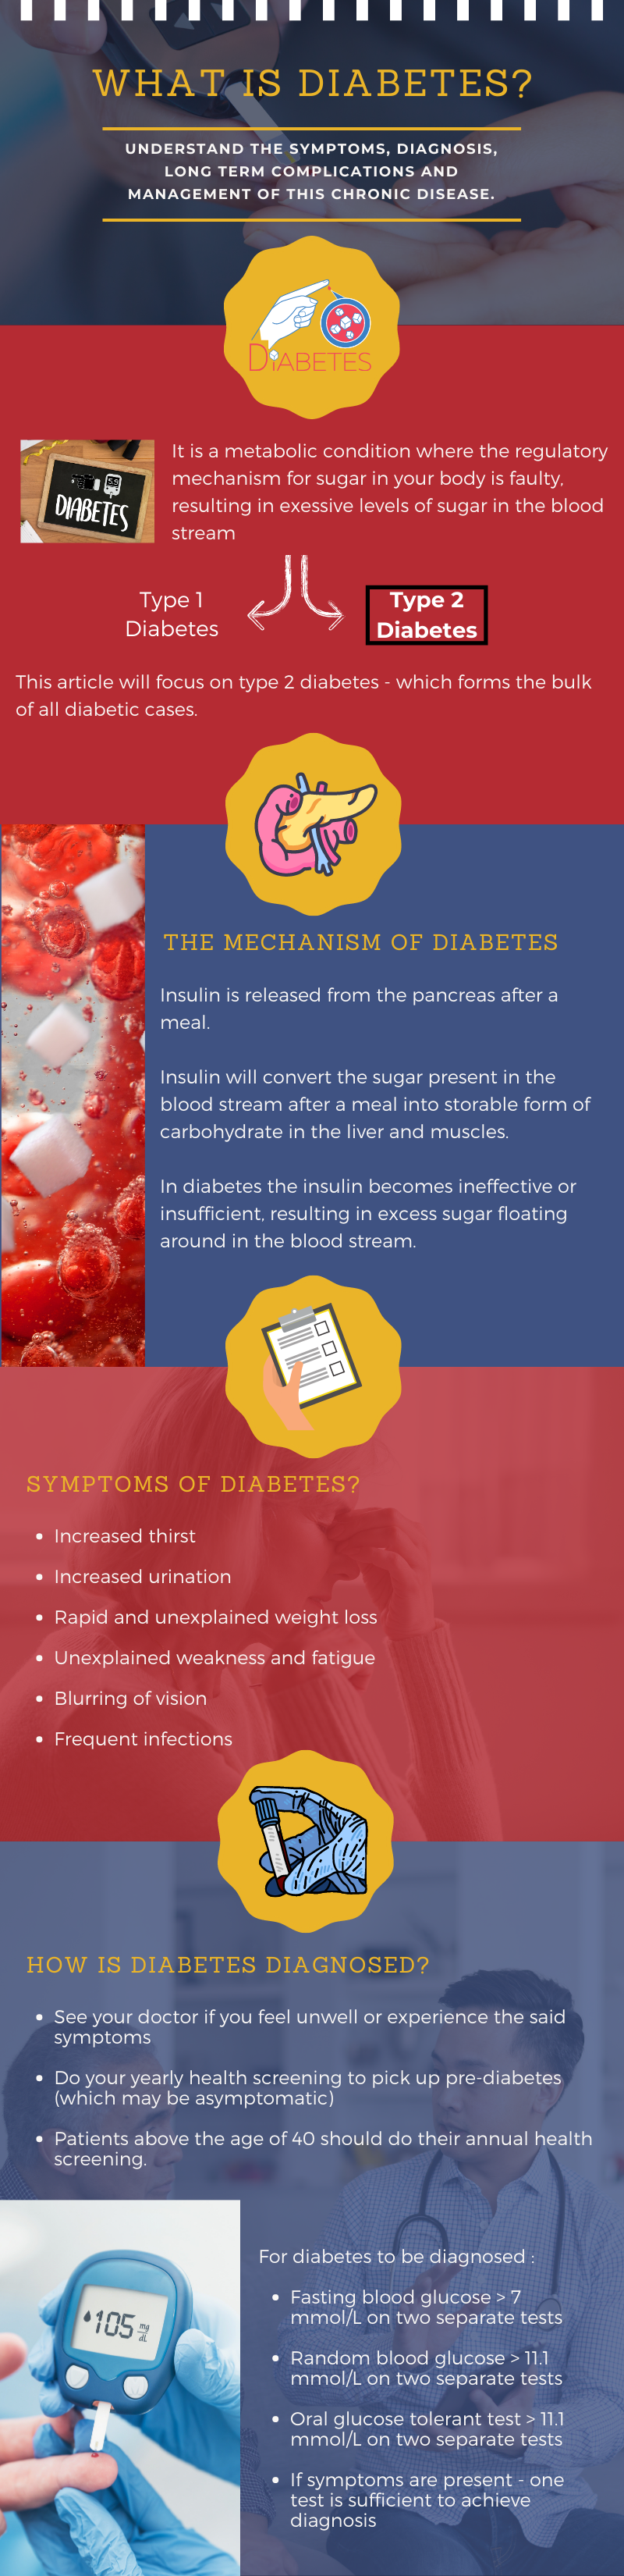 Diabetes definition, diabetes symptoms, diabetes diagnosis